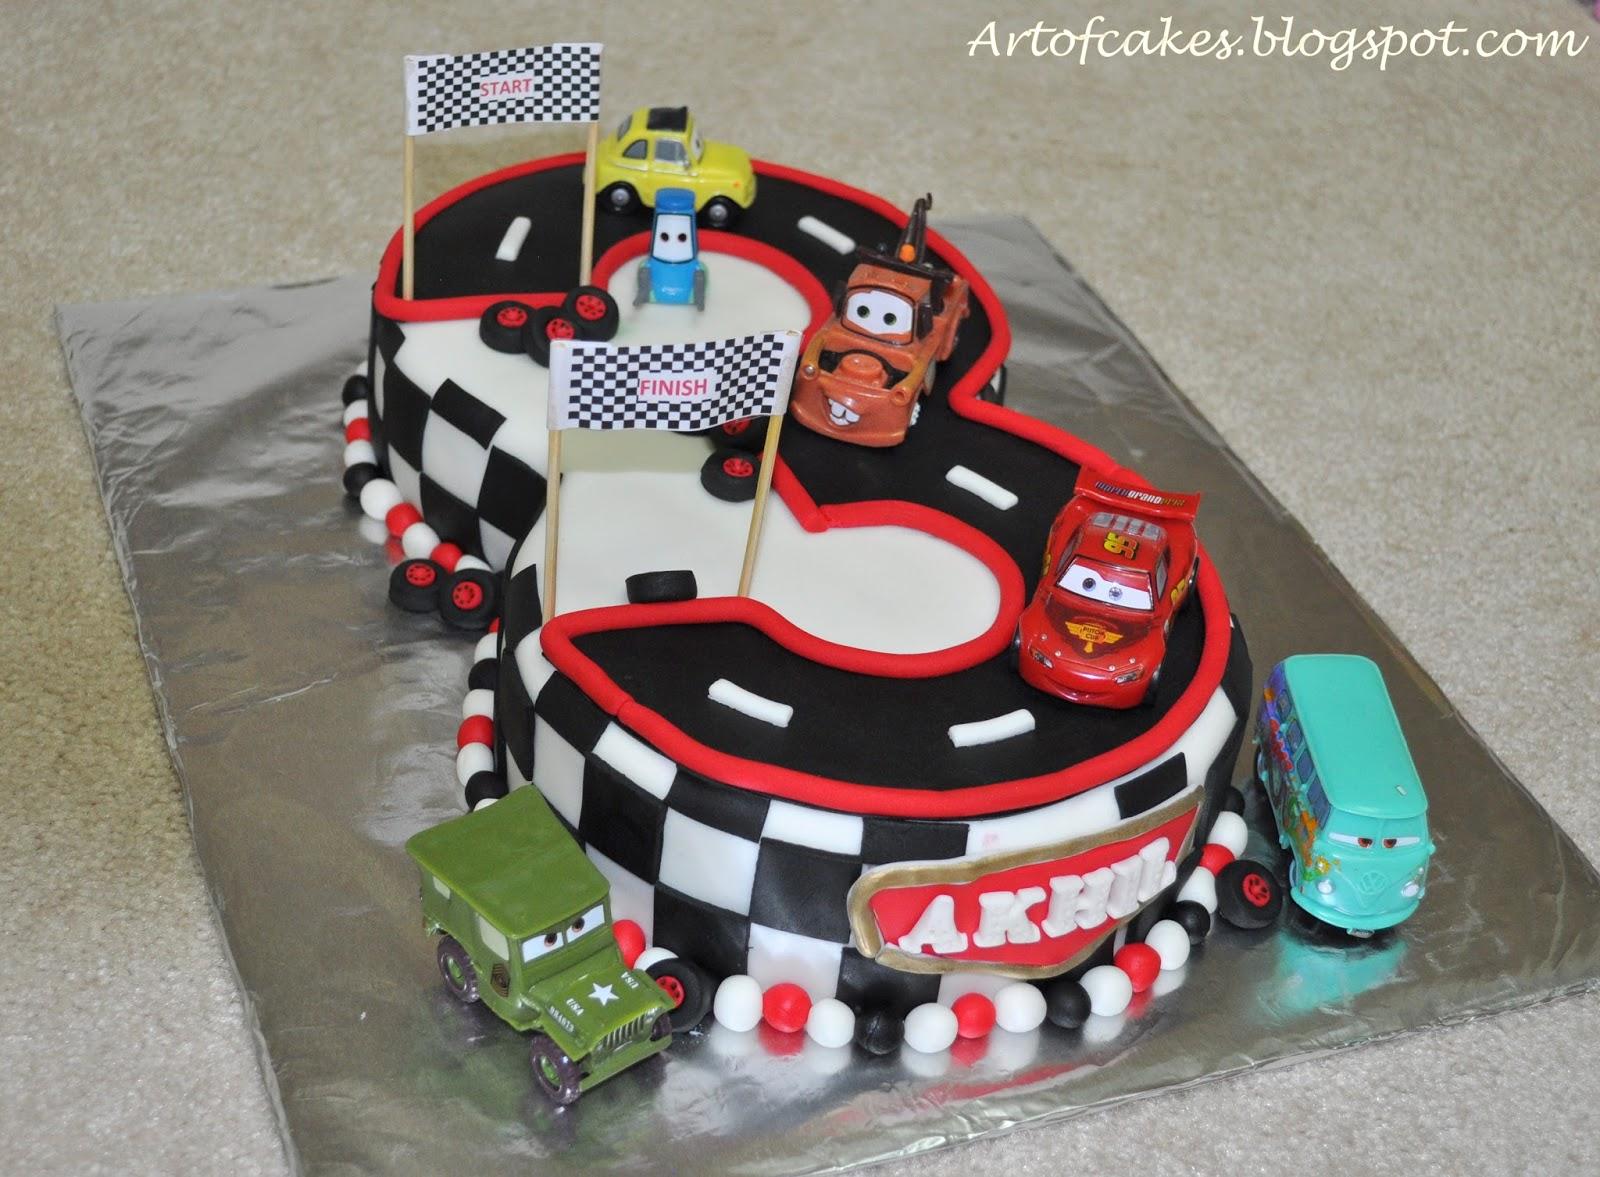 Cake Design Cars Theme : Art Of Cakes: Disney Cars themed number 3 Fondant Cake